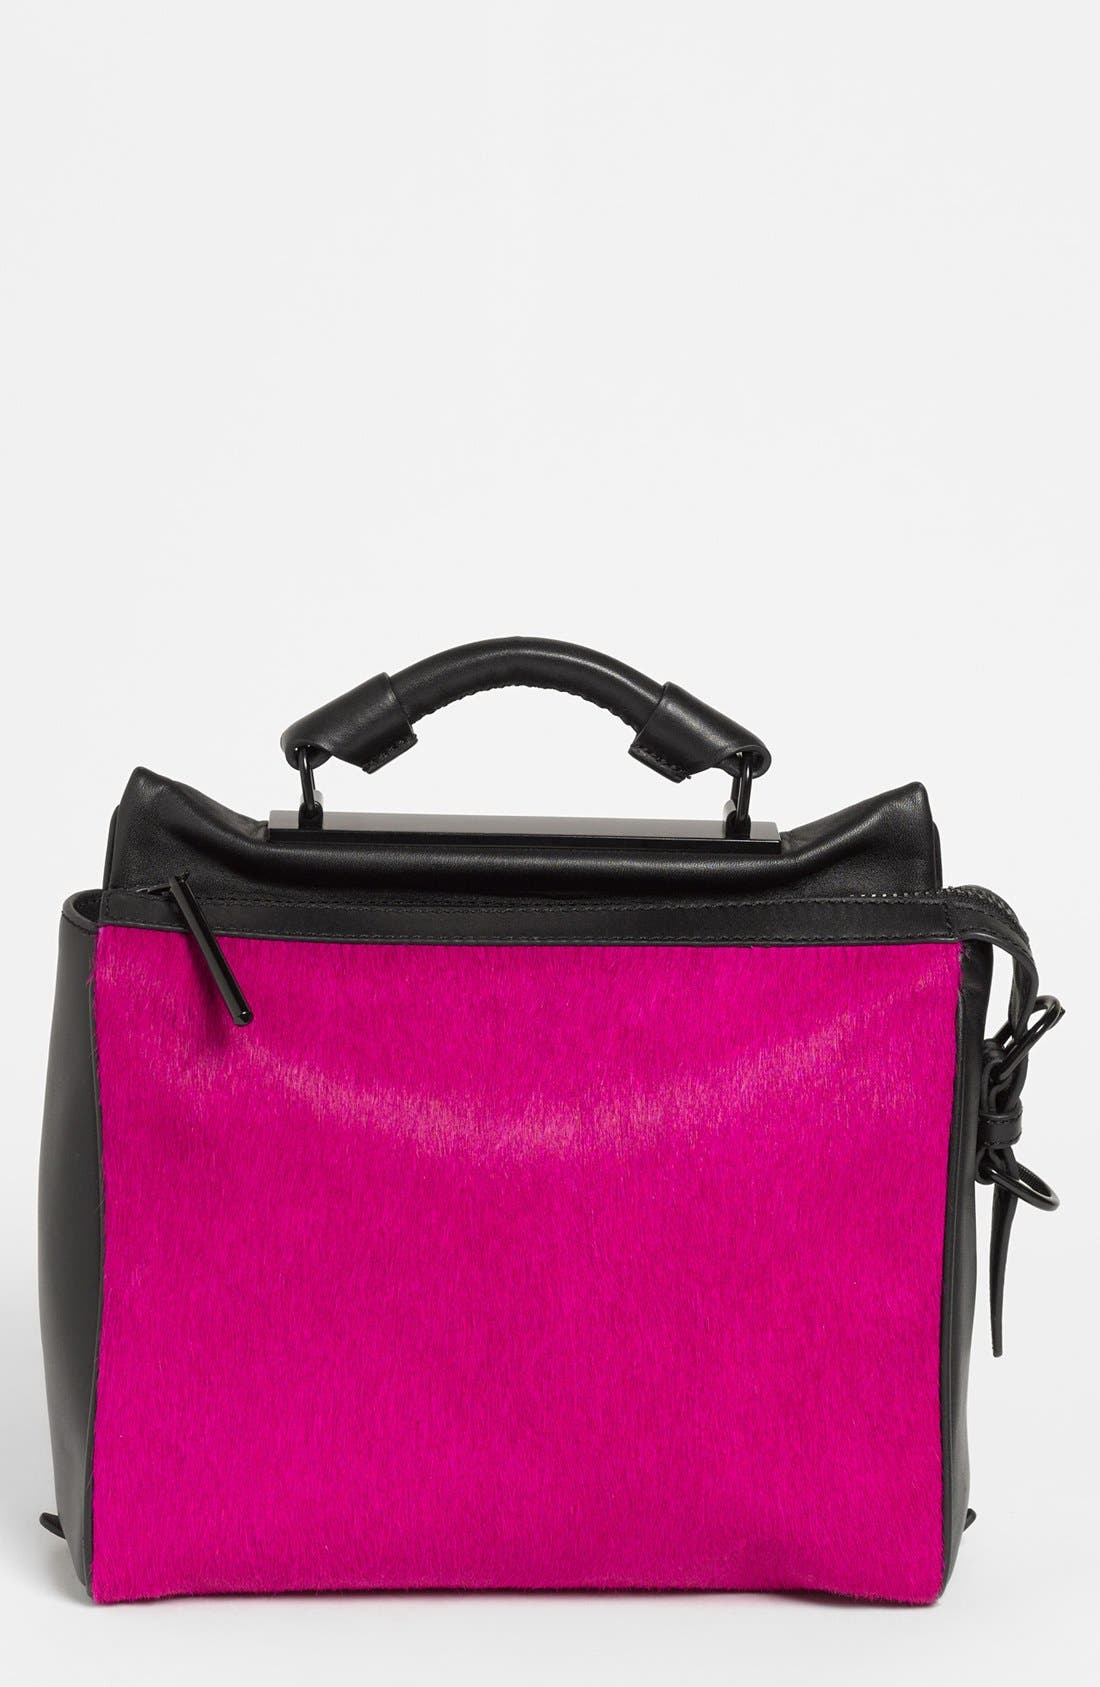 Alternate Image 1 Selected - 3.1 Phillip Lim 'Ryder - Small' Calf Hair & Leather Satchel